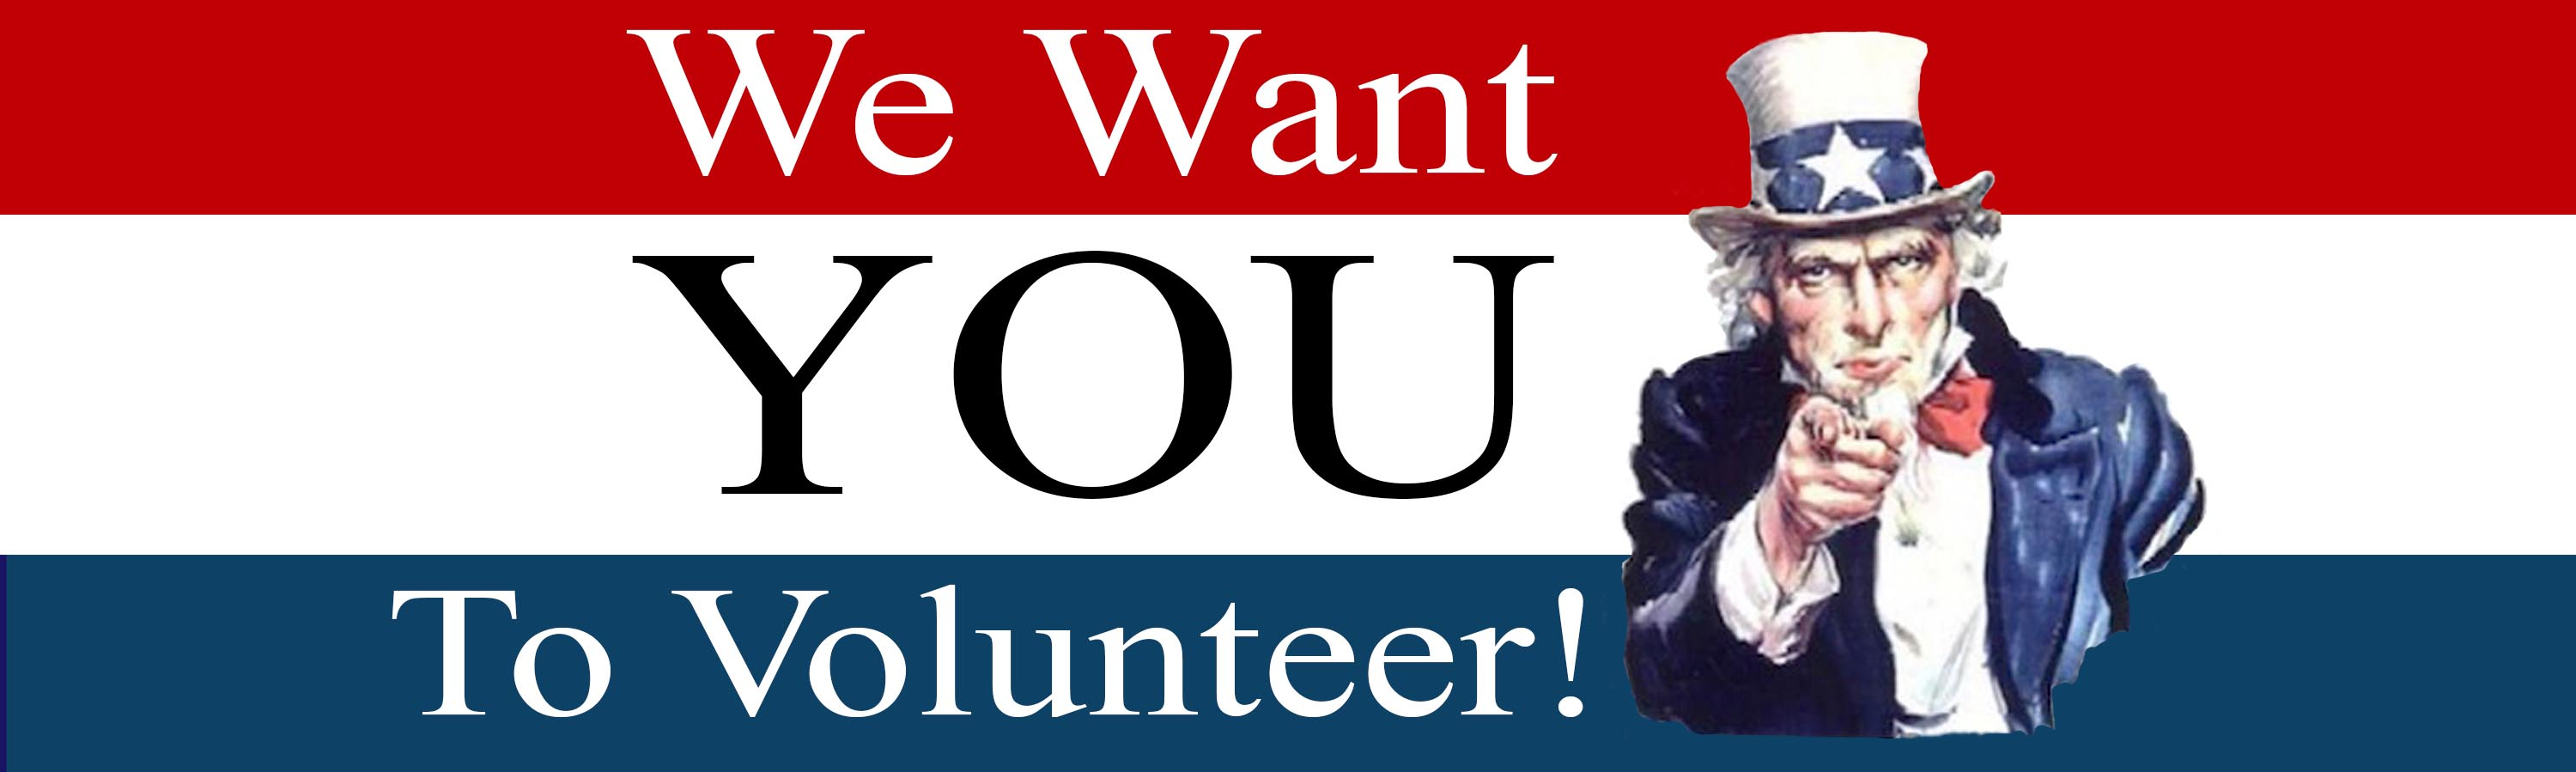 i want you to volunteer - photo #4